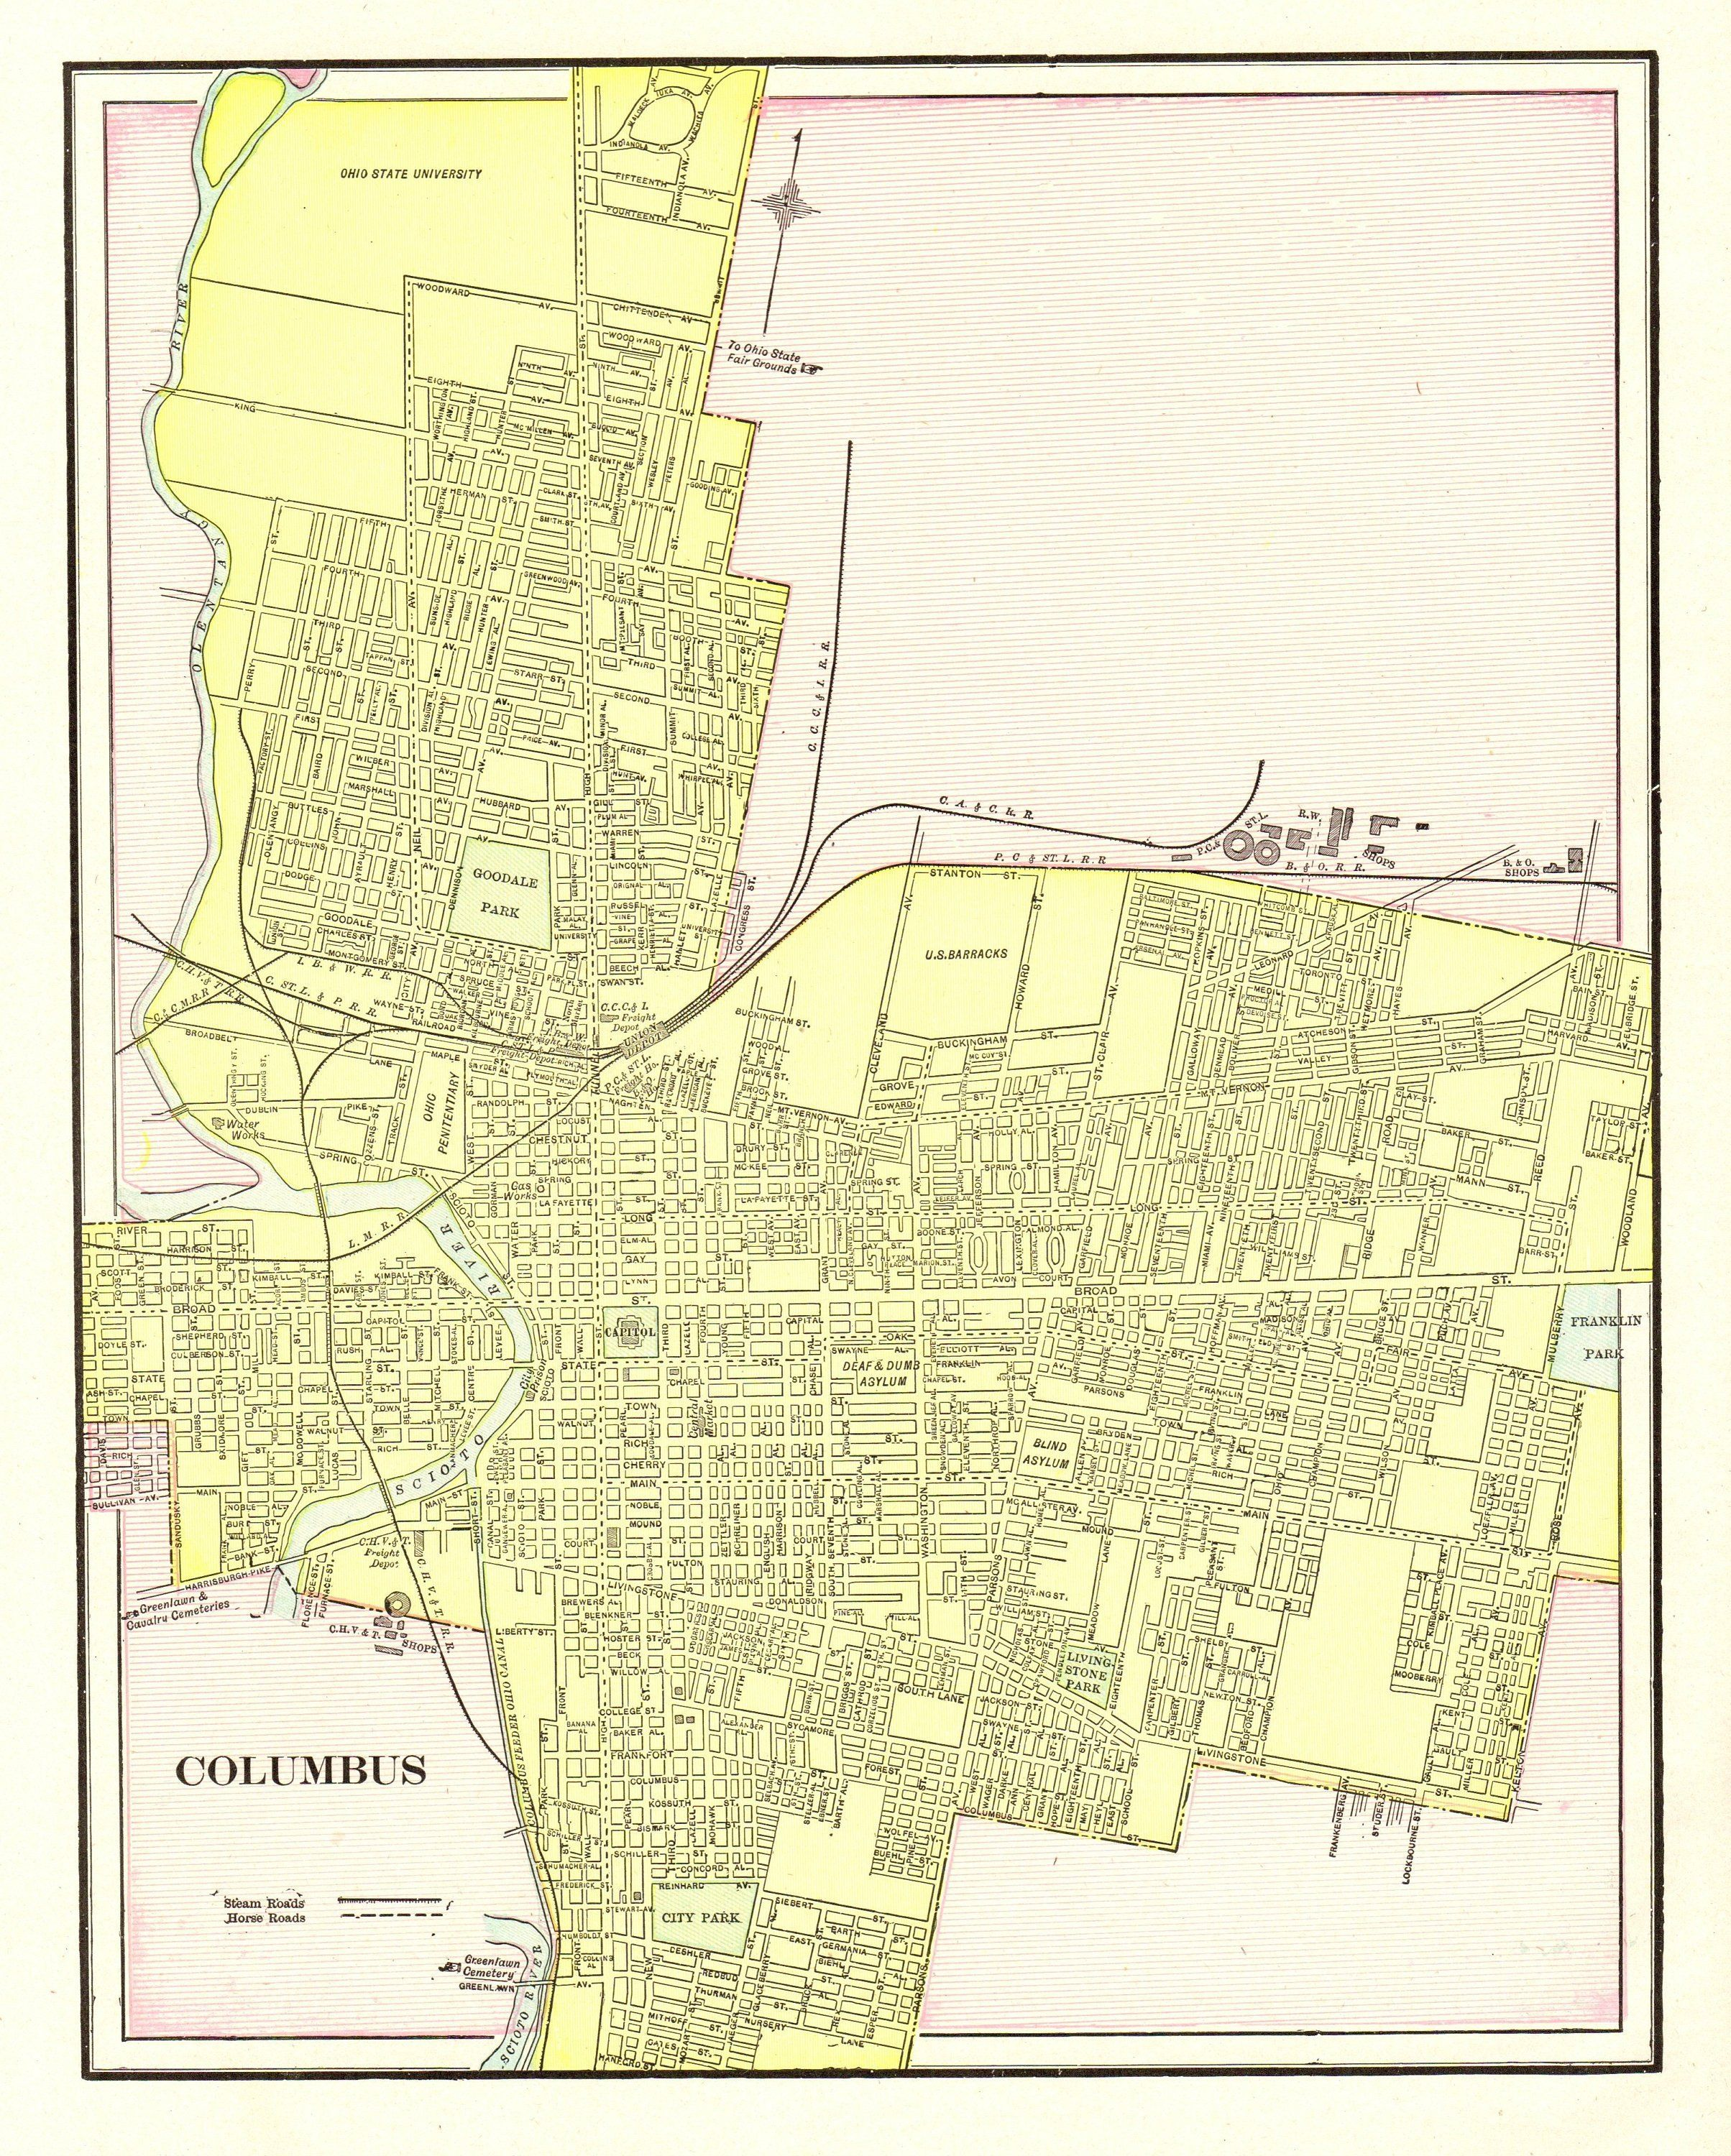 1901 Antique COLUMBUS CITY Map Reproduction Print of Columbus Ohio ...